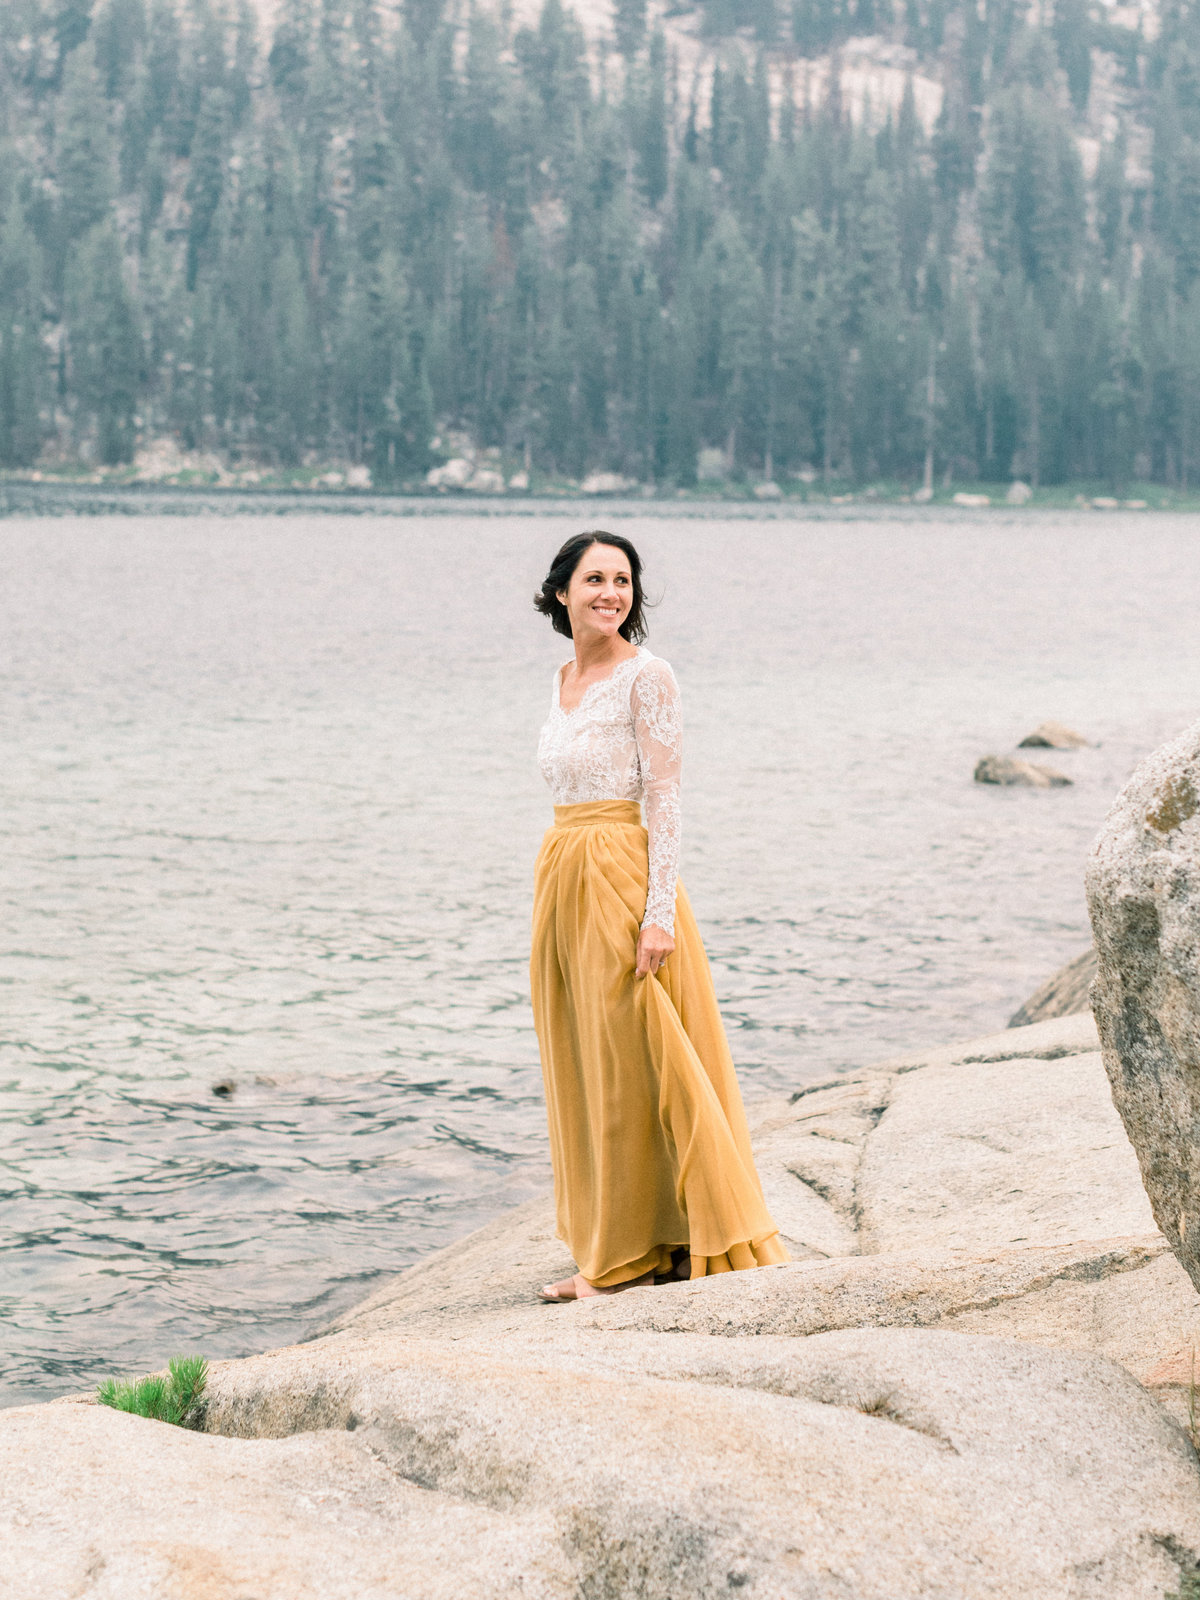 california wedding photographer, california destination wedding photographer, california elopement photographer, yosemite national park elopement-10